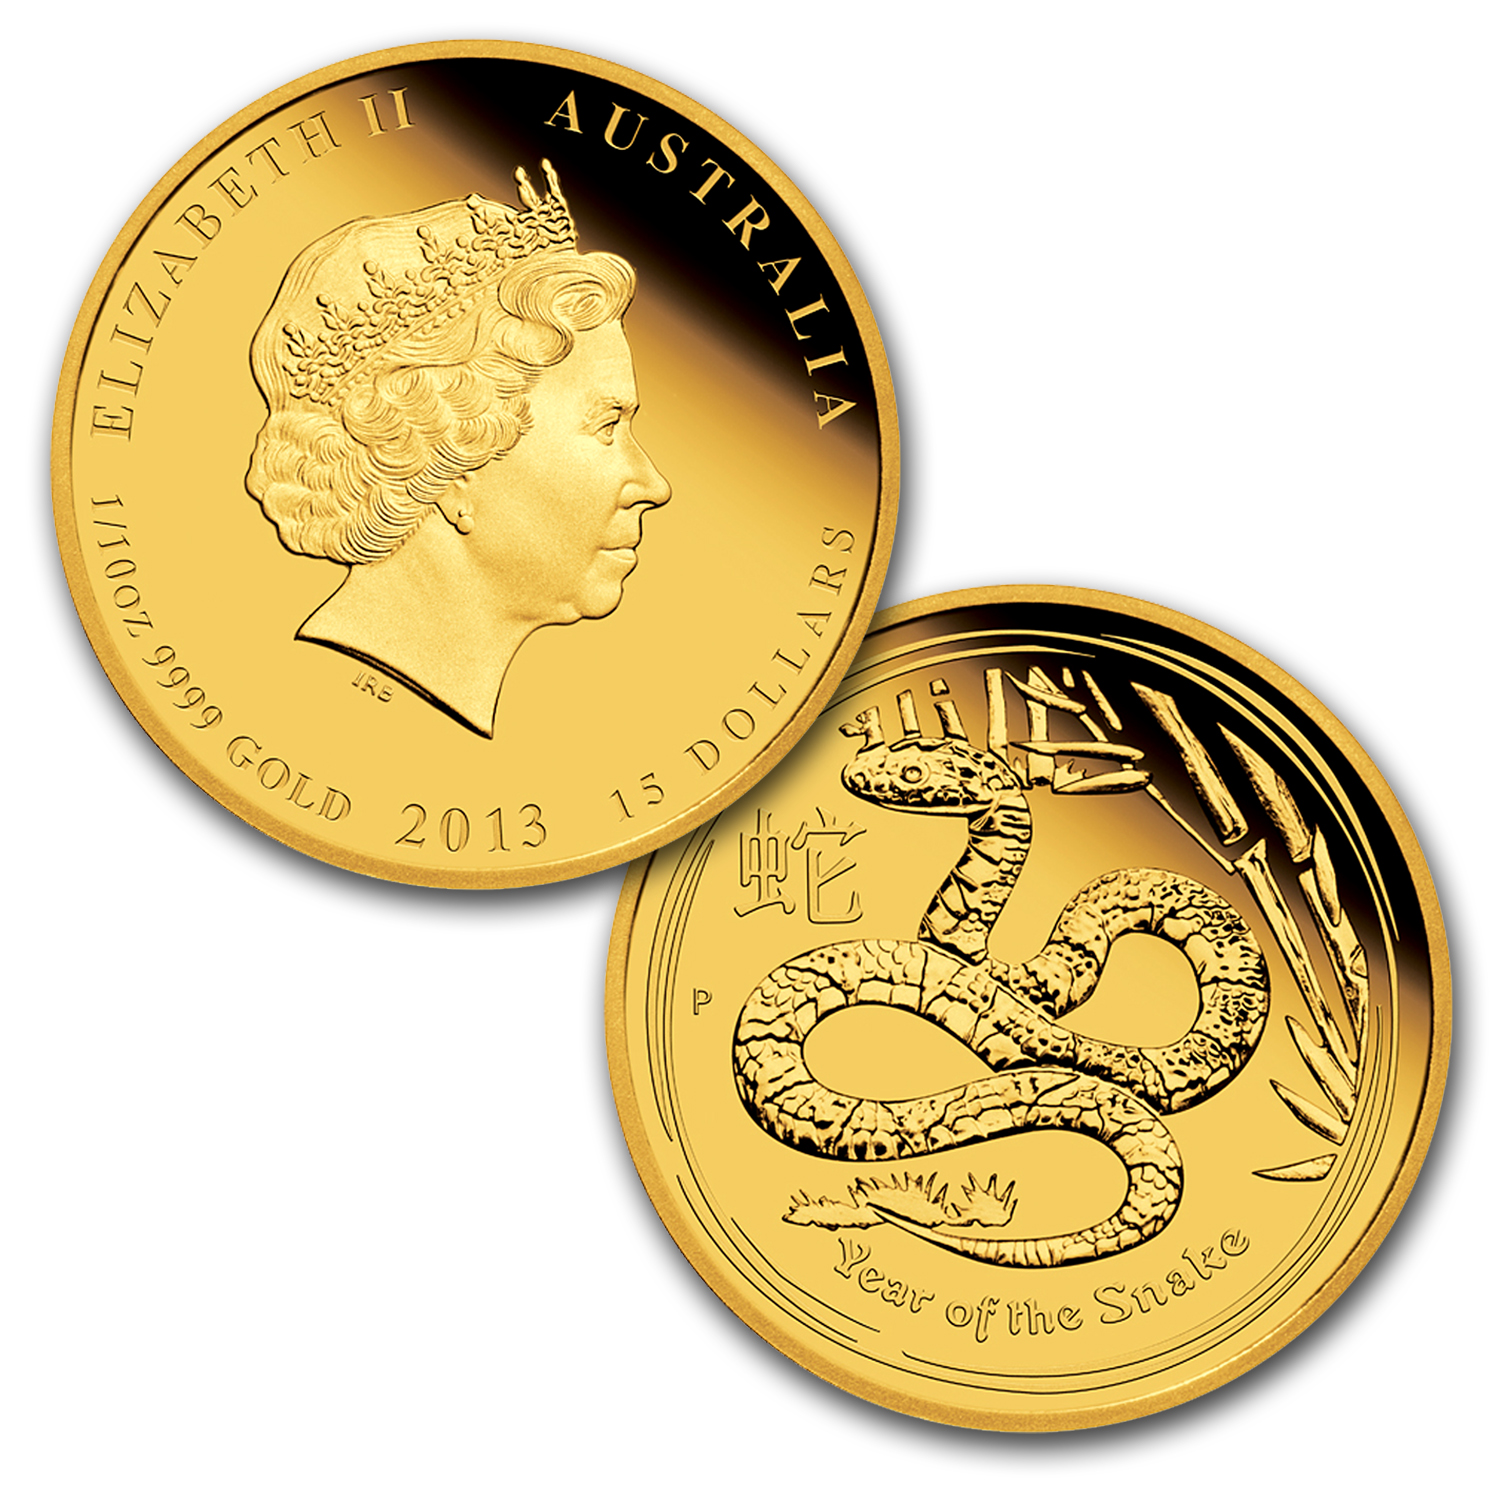 2013 Proof Gold 1.35 oz Year of the Snake 3-Coin Set (Series II)